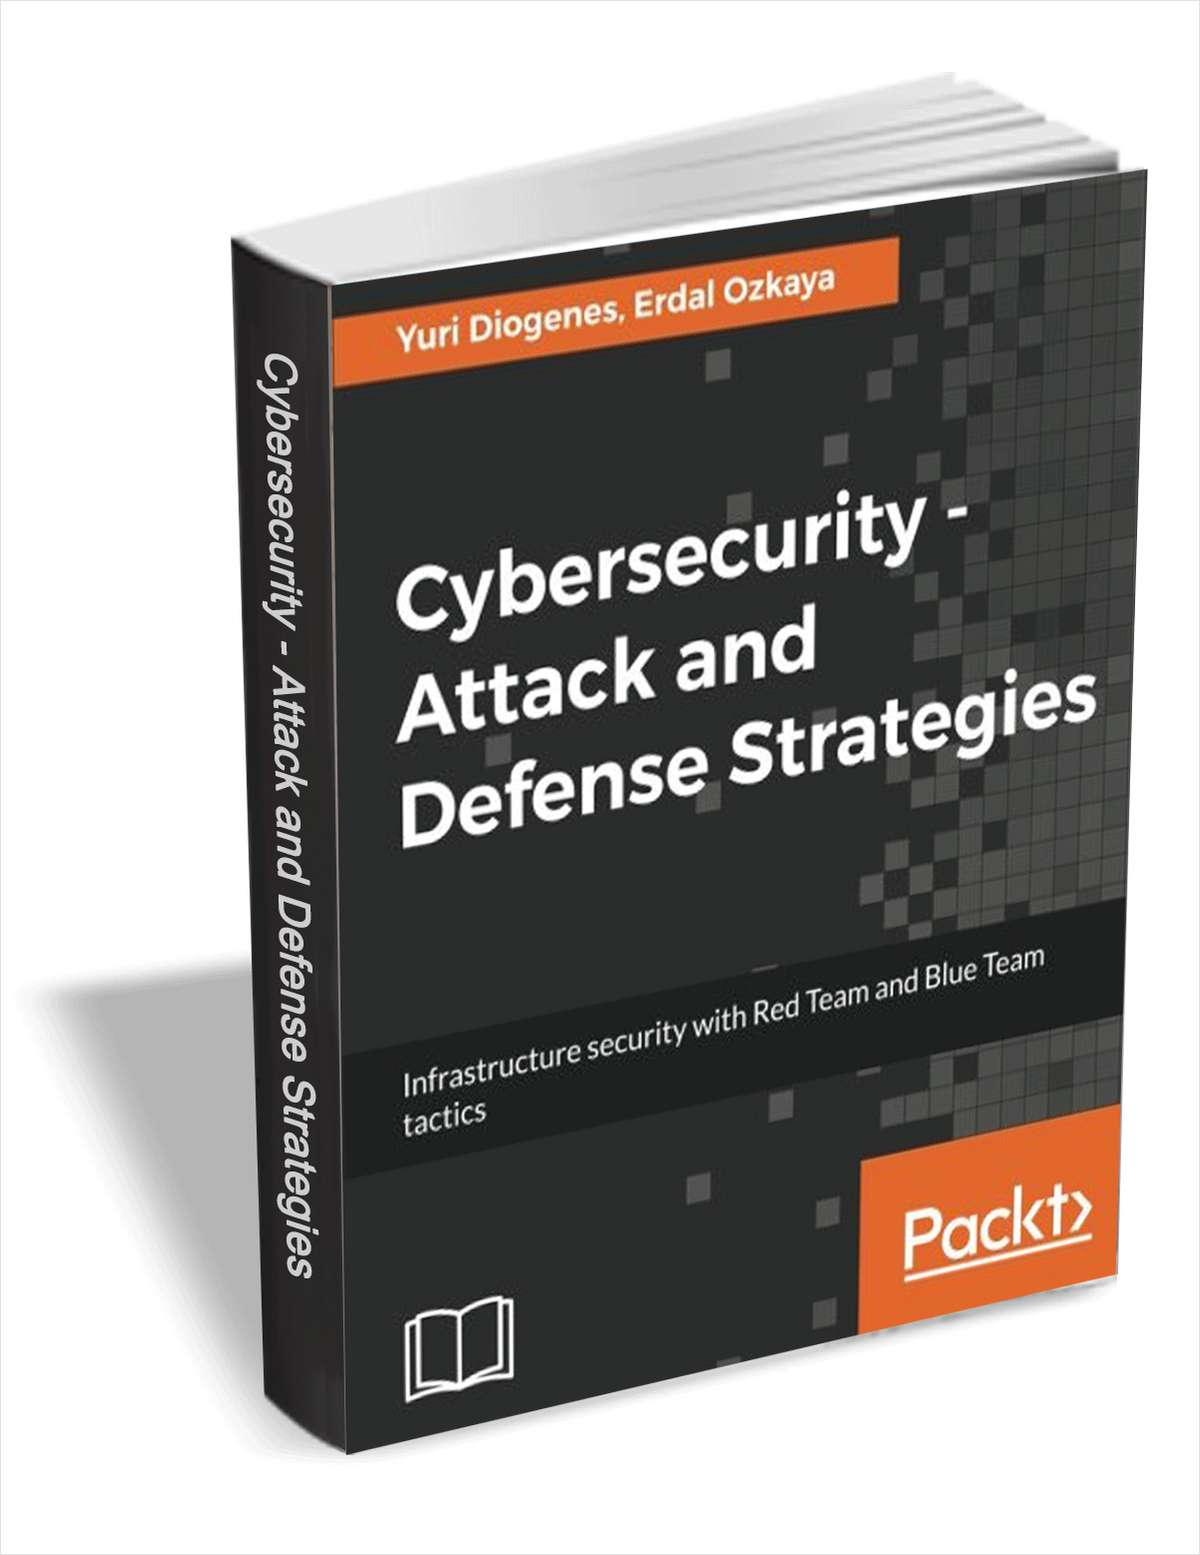 Cybersecurity - Attack and Defense Strategies ($20 Value) FREE For a Limited Time